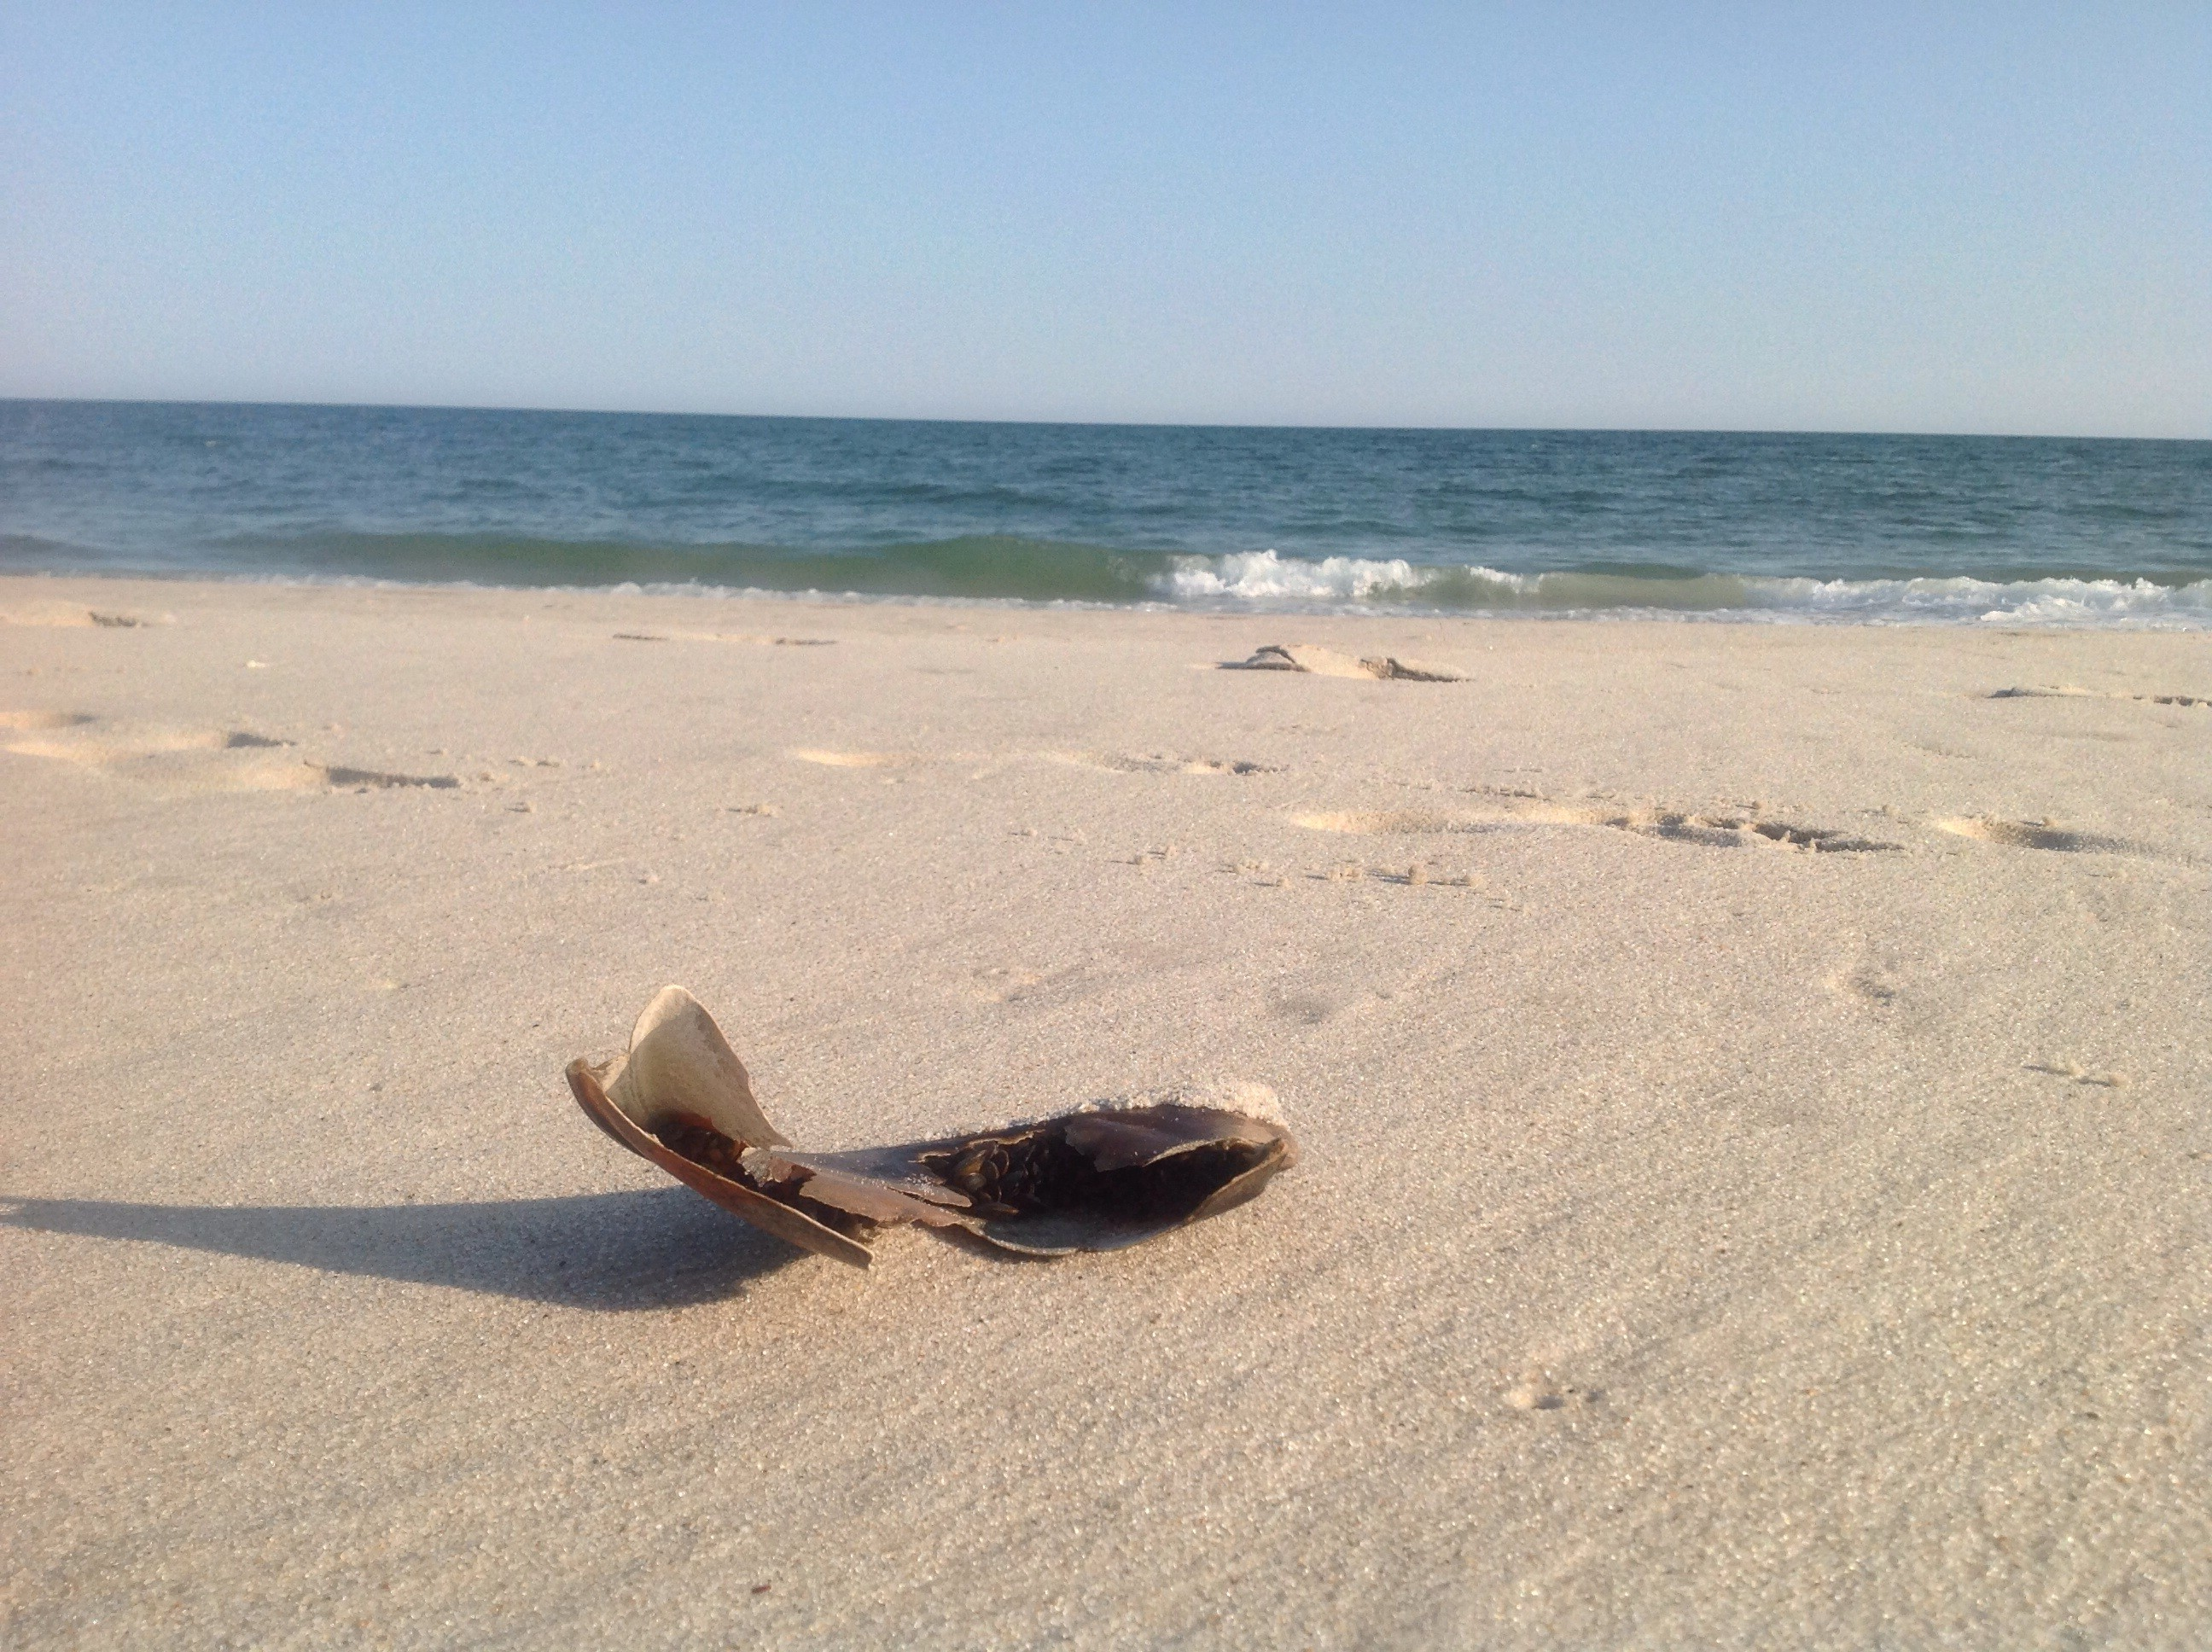 The waves washed up a piece of a horseshoe crab shell filled with tiny mussels thriving inside.